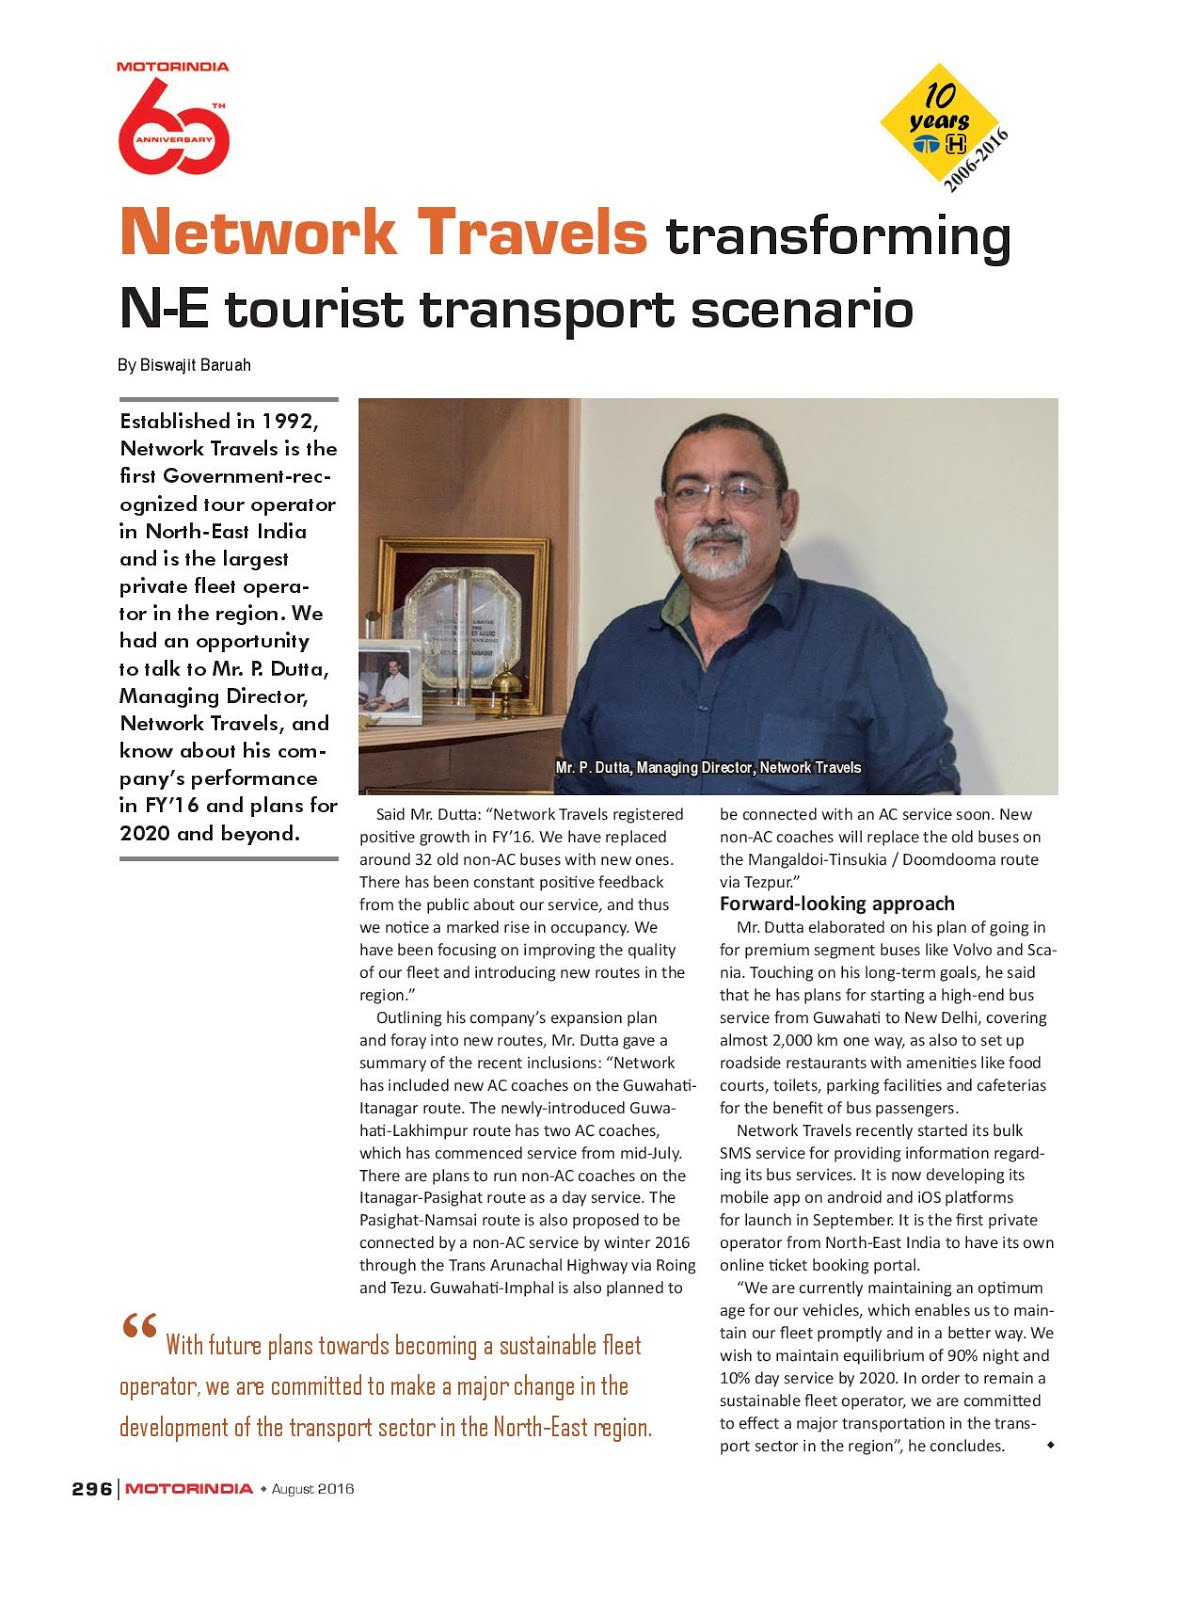 MOTOR INDIA ARTICLE 5 : NETWORK TRAVELS - 2016 ANNIVERSARY EDITION